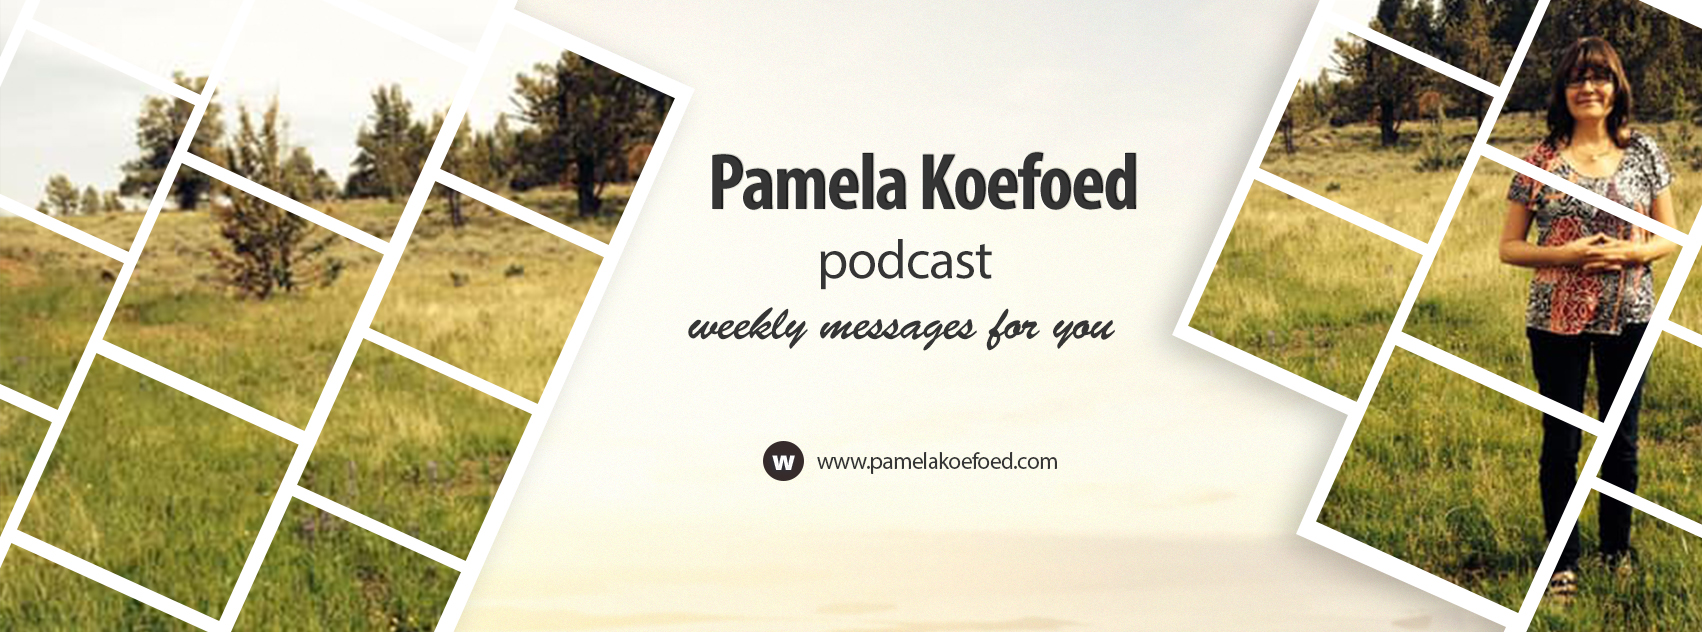 Pamela Podcast Cover